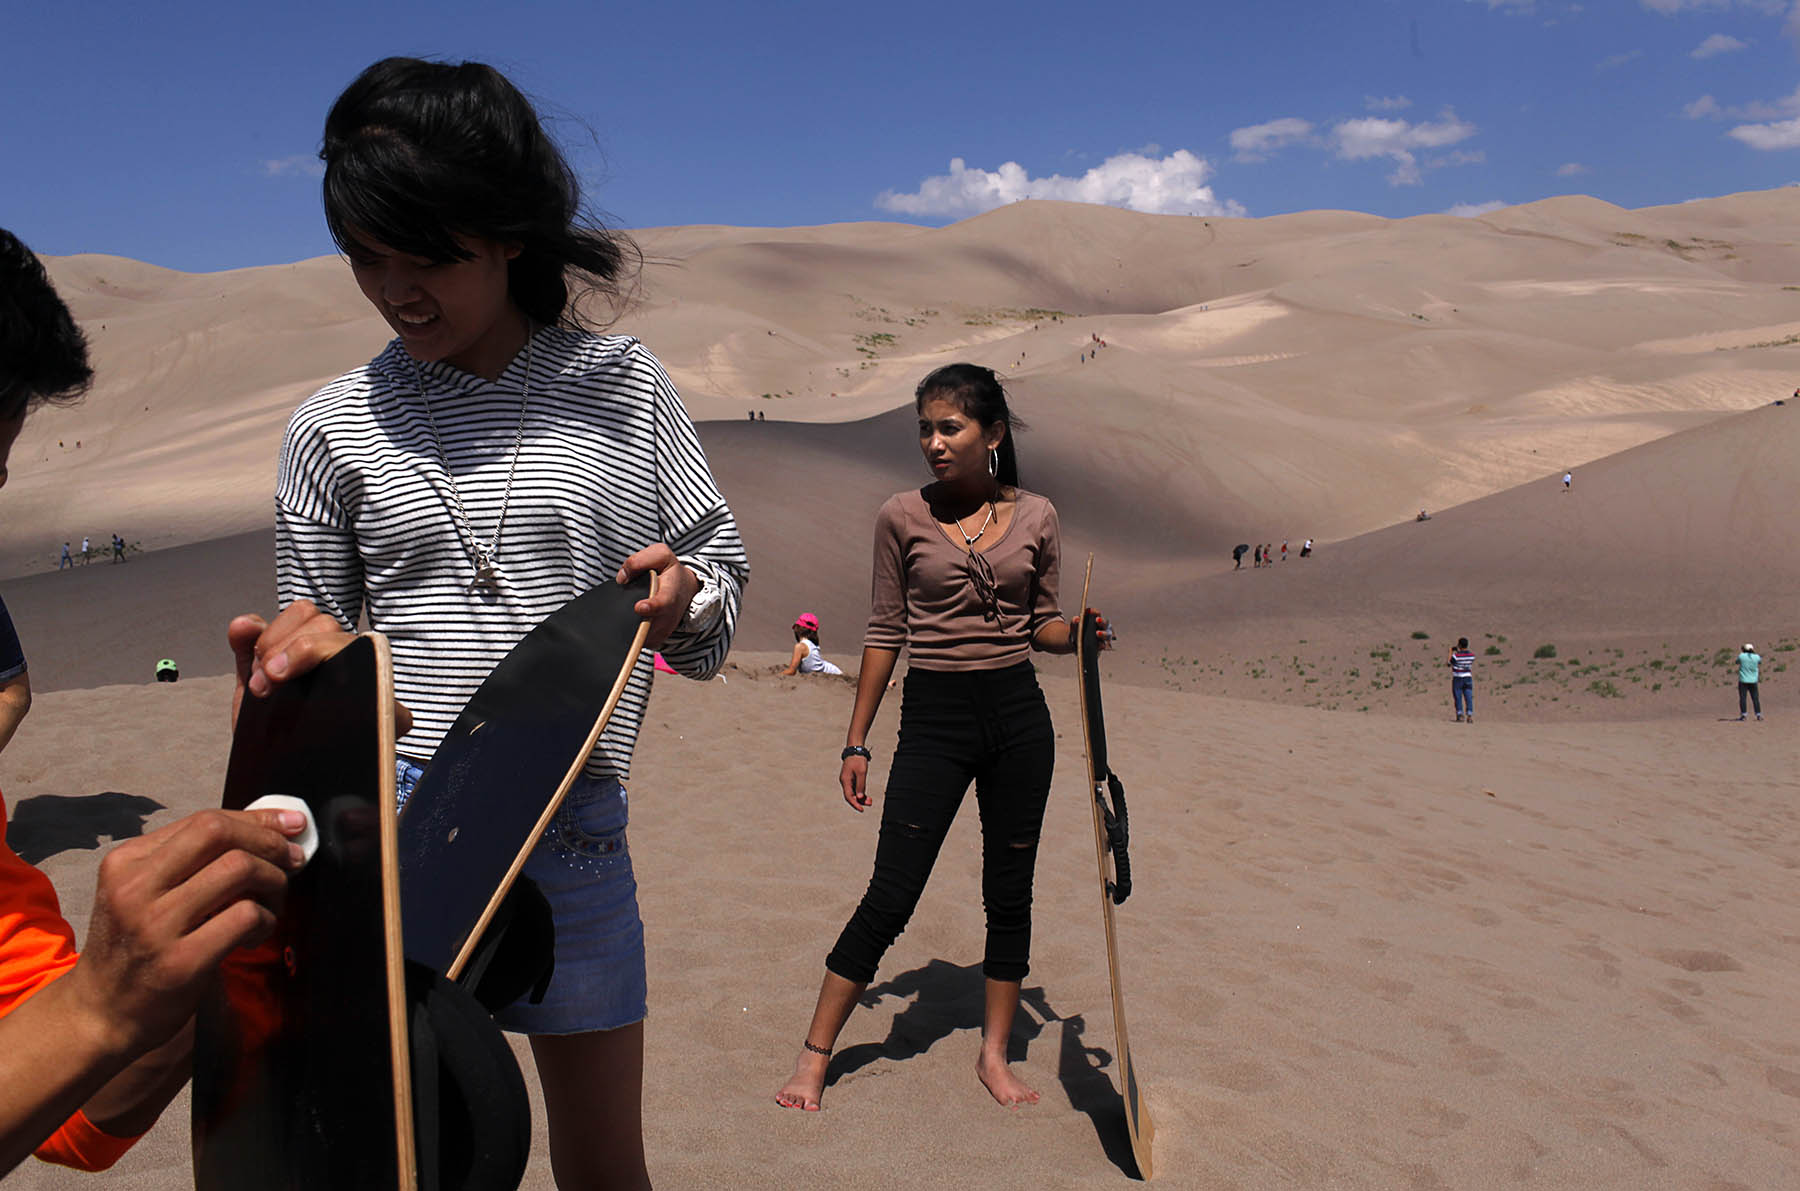 Puja Rai, 14, left and Sapana Gurung, 14, right, prepare to ride down some of the dunes on Sept. 2, 2017. The crew spent a large part of the day at the Great Sand Dunes National Park and Preserve.